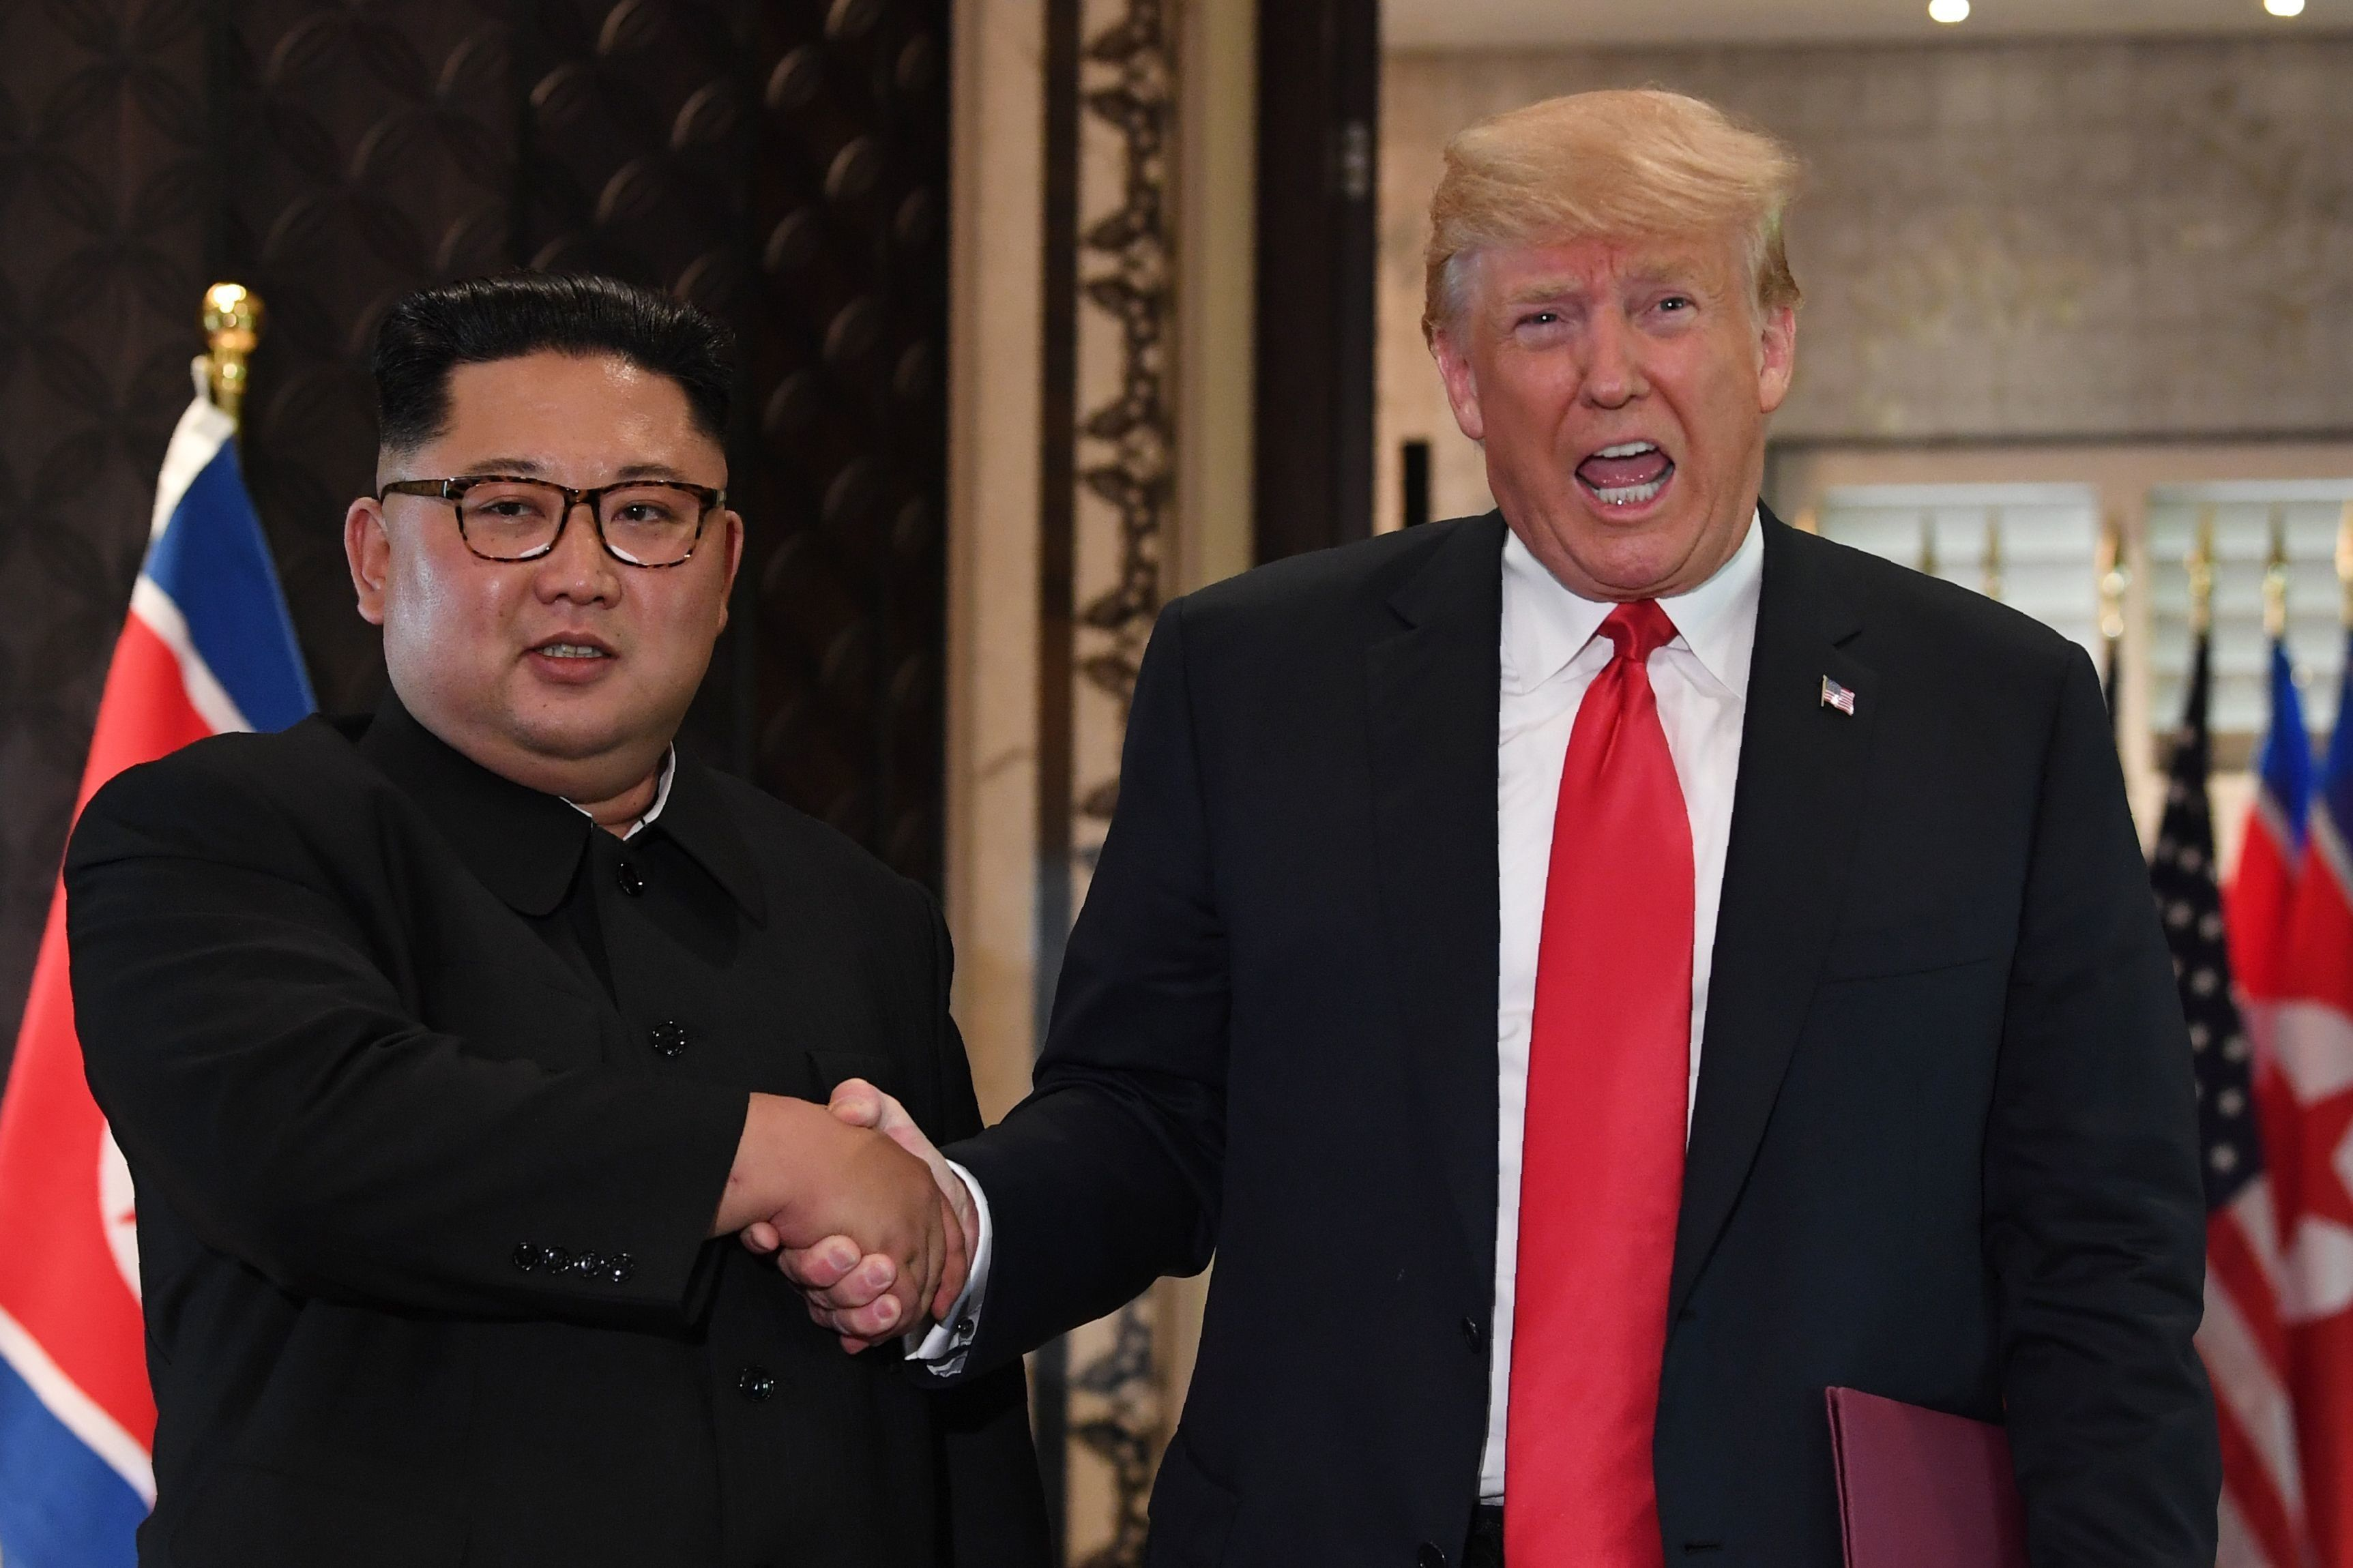 TOPSHOT - US President Donald Trump (R) and North Korea's leader Kim Jong Un shake hands following a signing ceremony during their historic US-North Korea summit, at the Capella Hotel on Sentosa island in Singapore on June 12, 2018. - Donald Trump and Kim Jong Un became on June 12 the first sitting US and North Korean leaders to meet, shake hands and negotiate to end a decades-old nuclear stand-off. (Photo by SAUL LOEB / AFP)        (Photo credit should read SAUL LOEB/AFP/Getty Images)